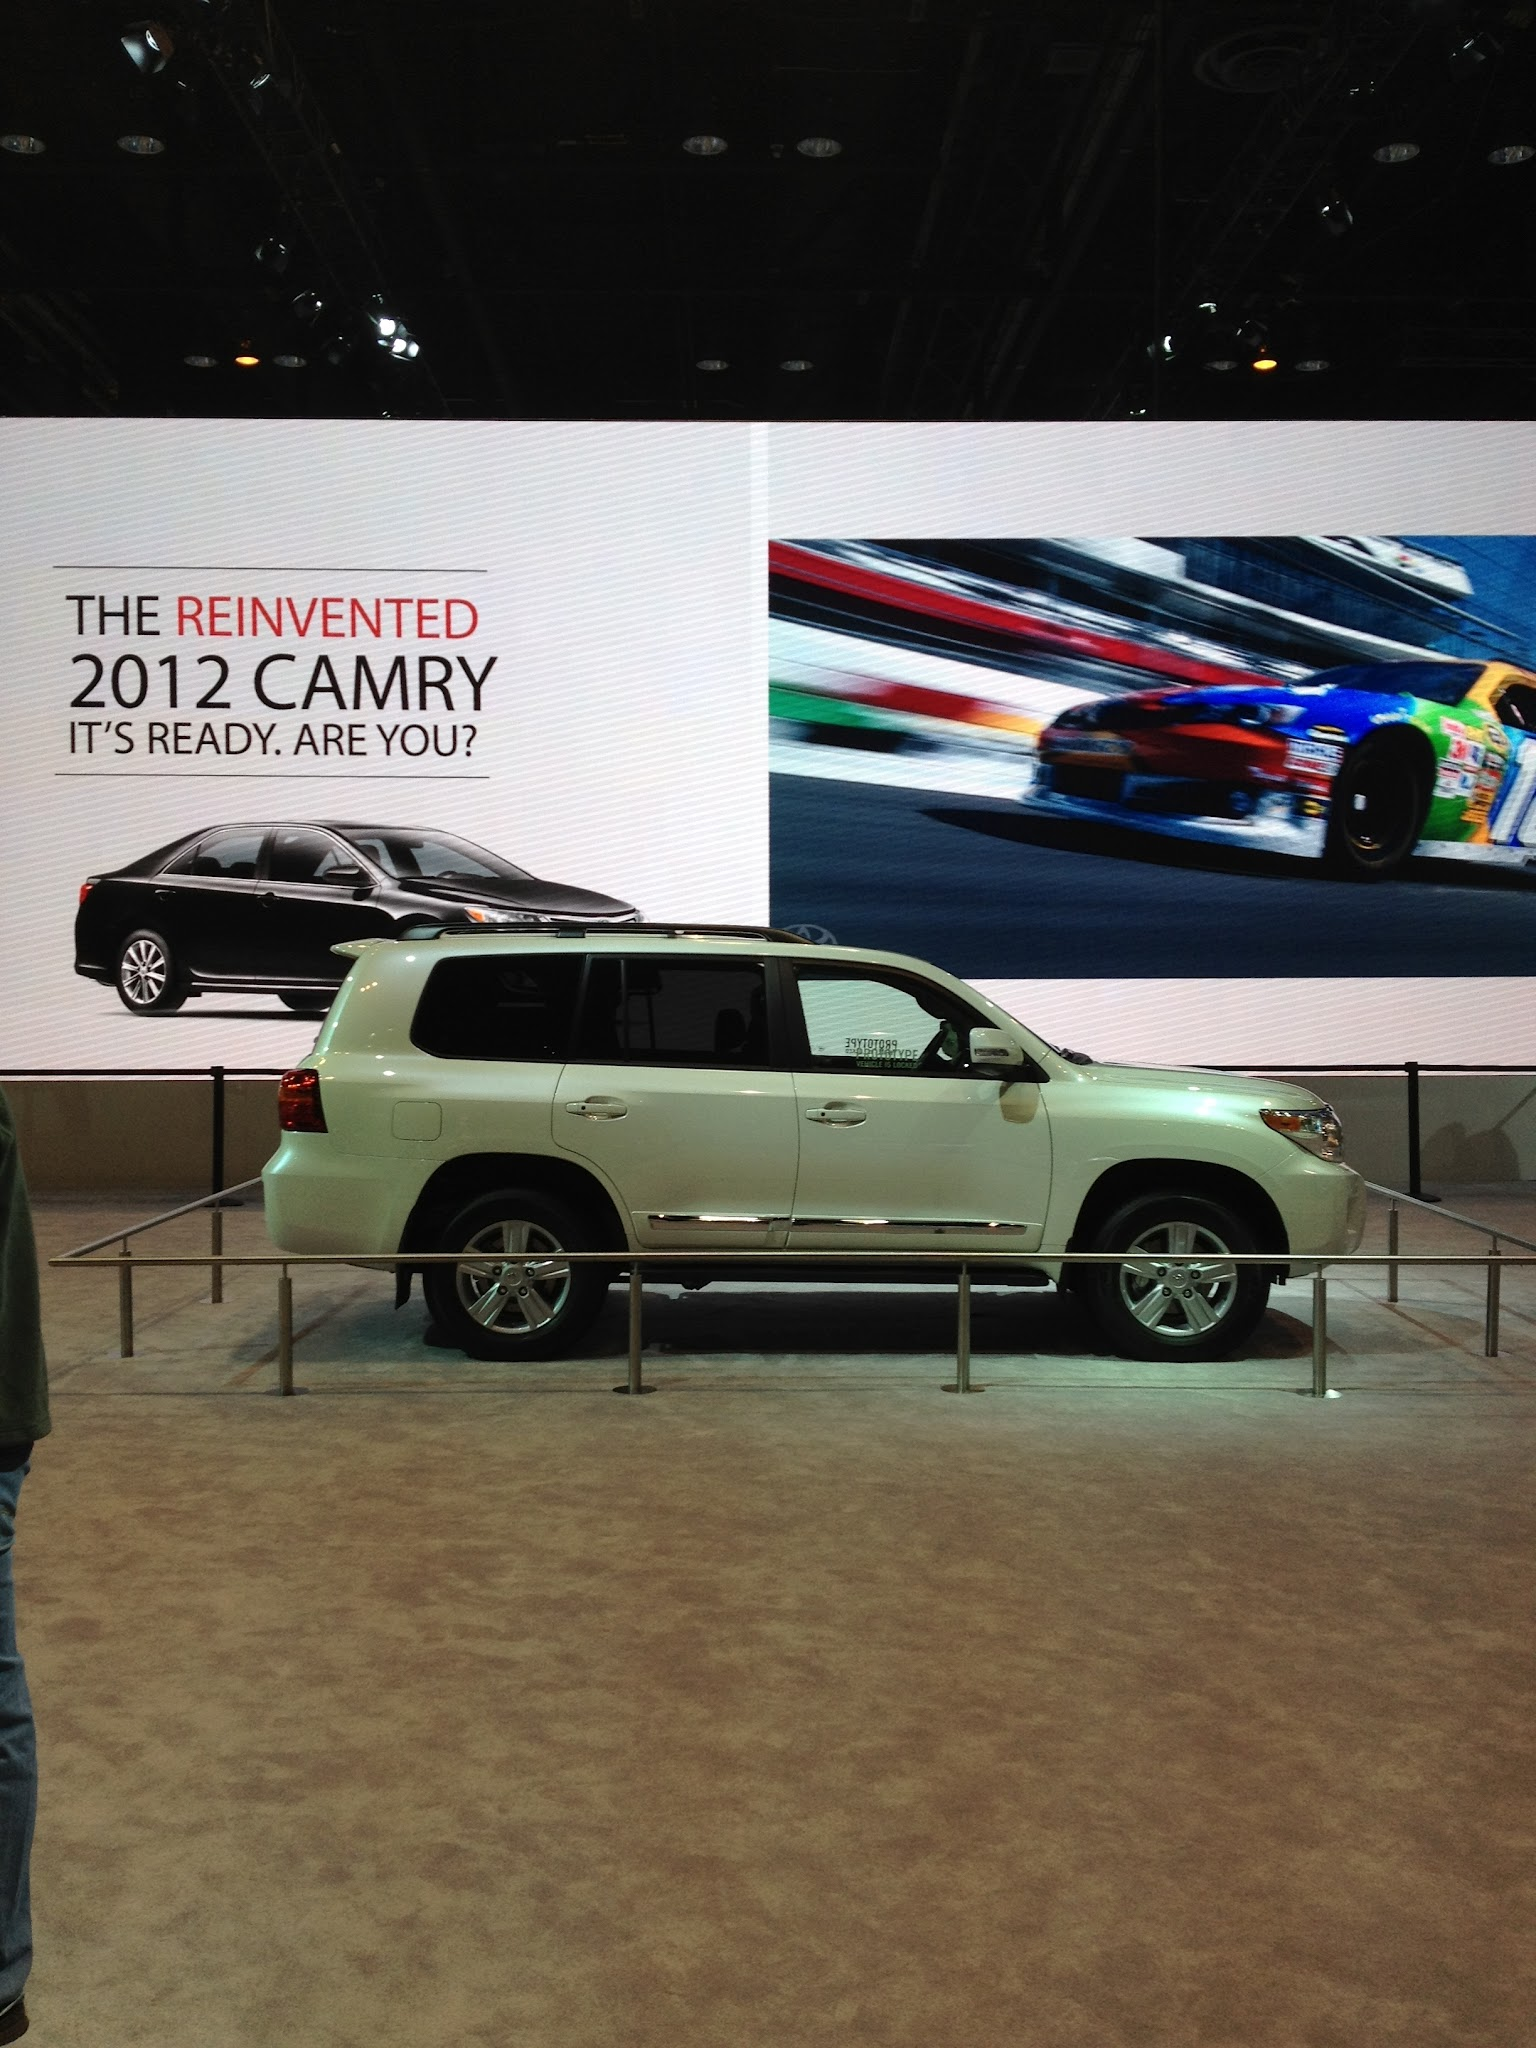 Photo: The 2013 Land Cruiser making its much awaited debut.